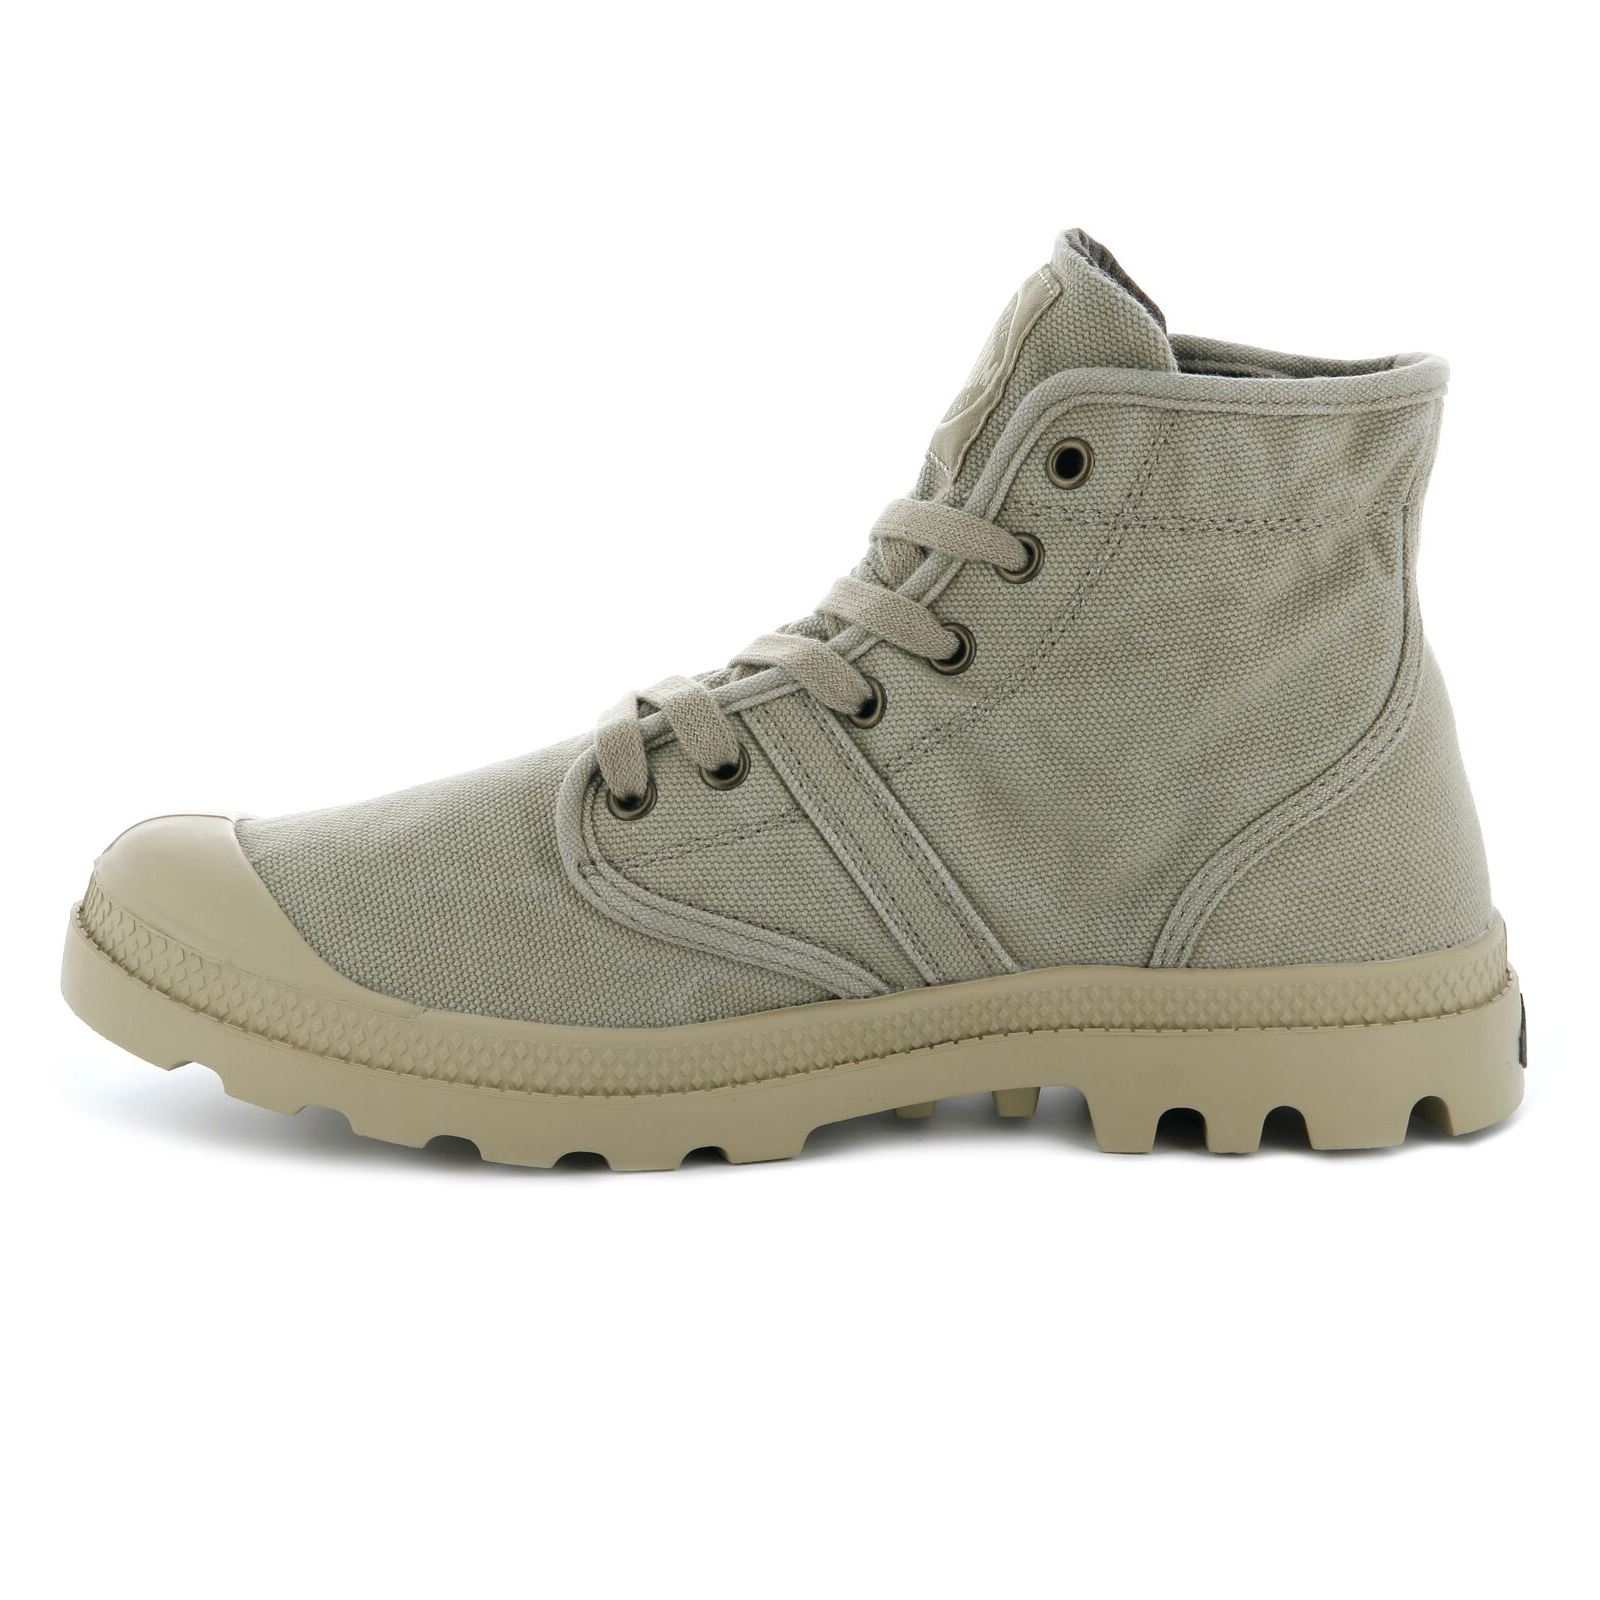 Palladium-Mens-Shoe-Pallabrouse-New-Designer-Walking-High-Top-Canvas-Ankle-Boots thumbnail 22